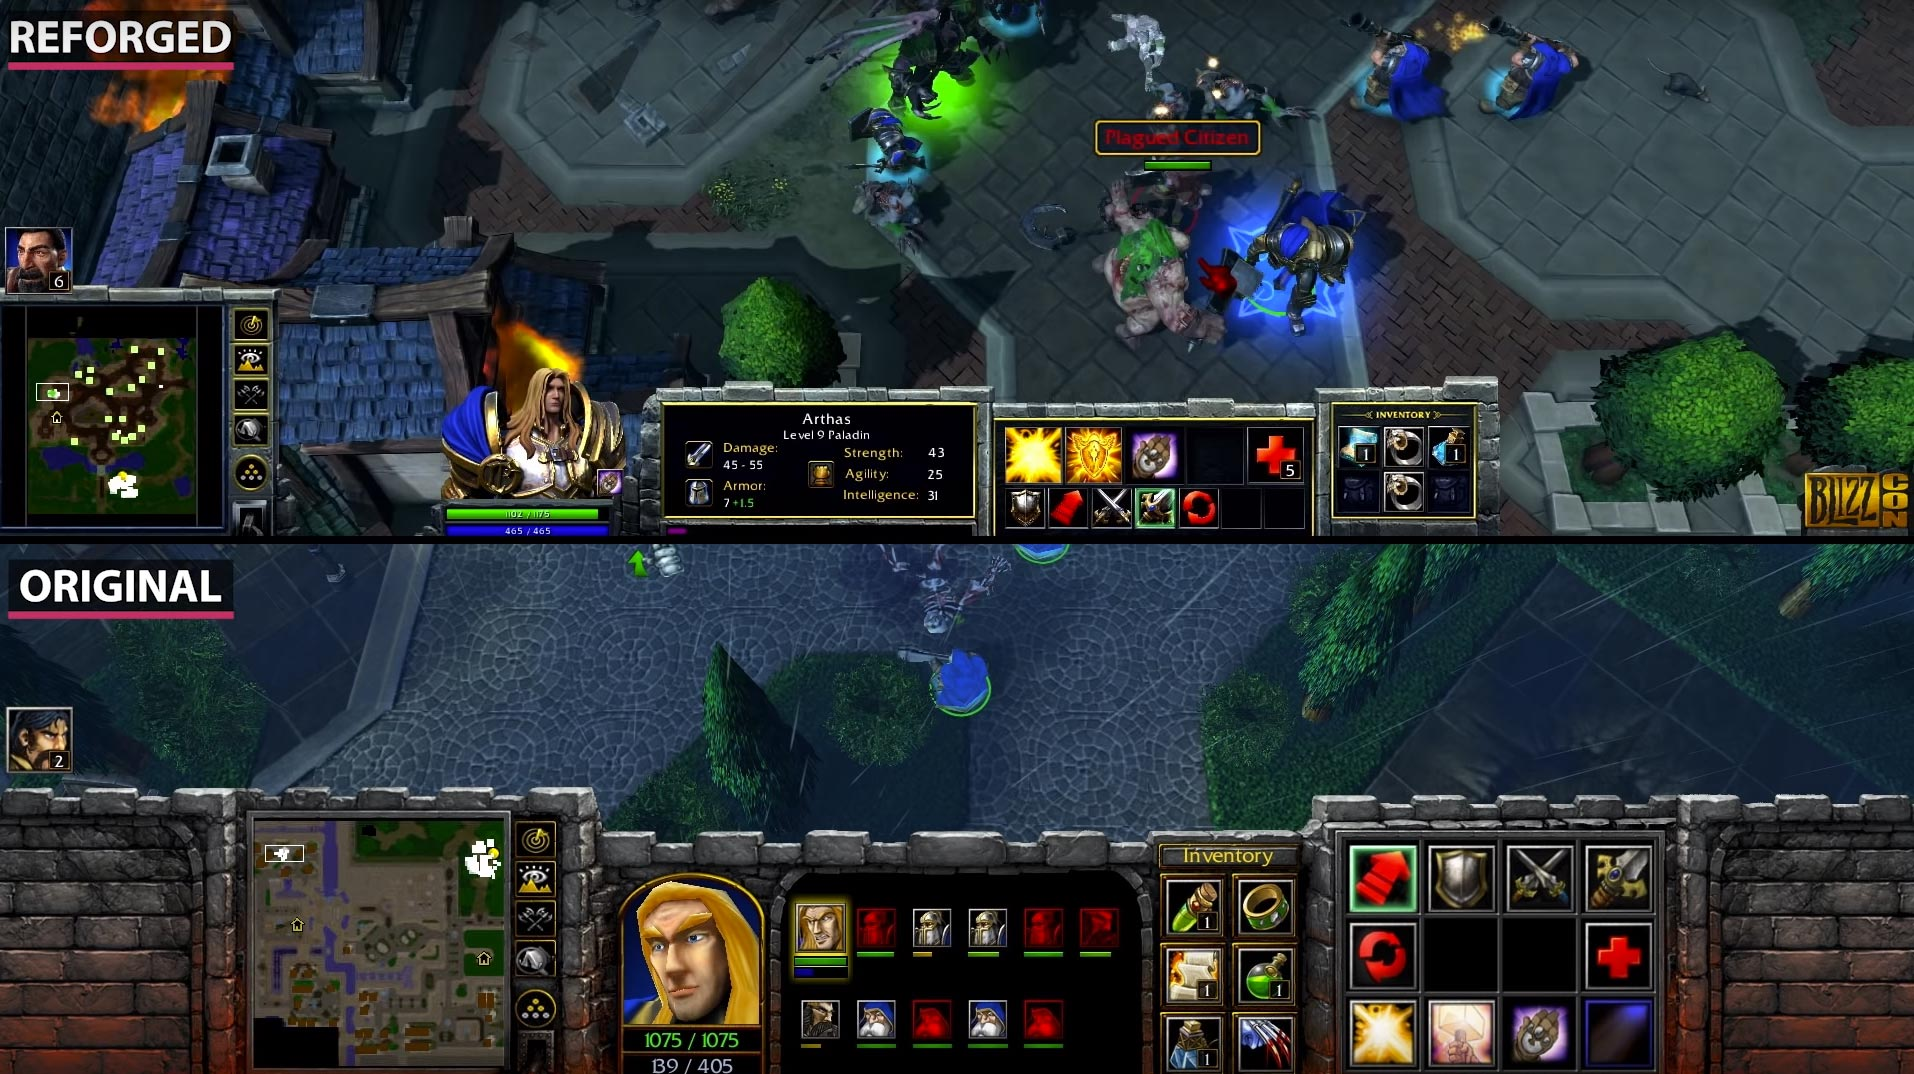 Warcraft 3 And Warcraft 3 Reforged Comparison Units Heroes